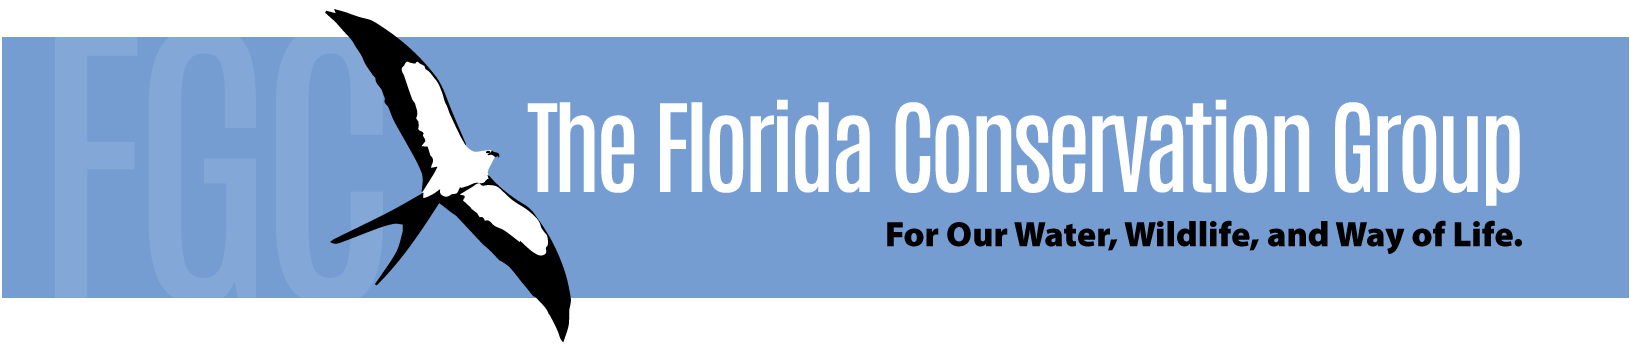 florida conservation group